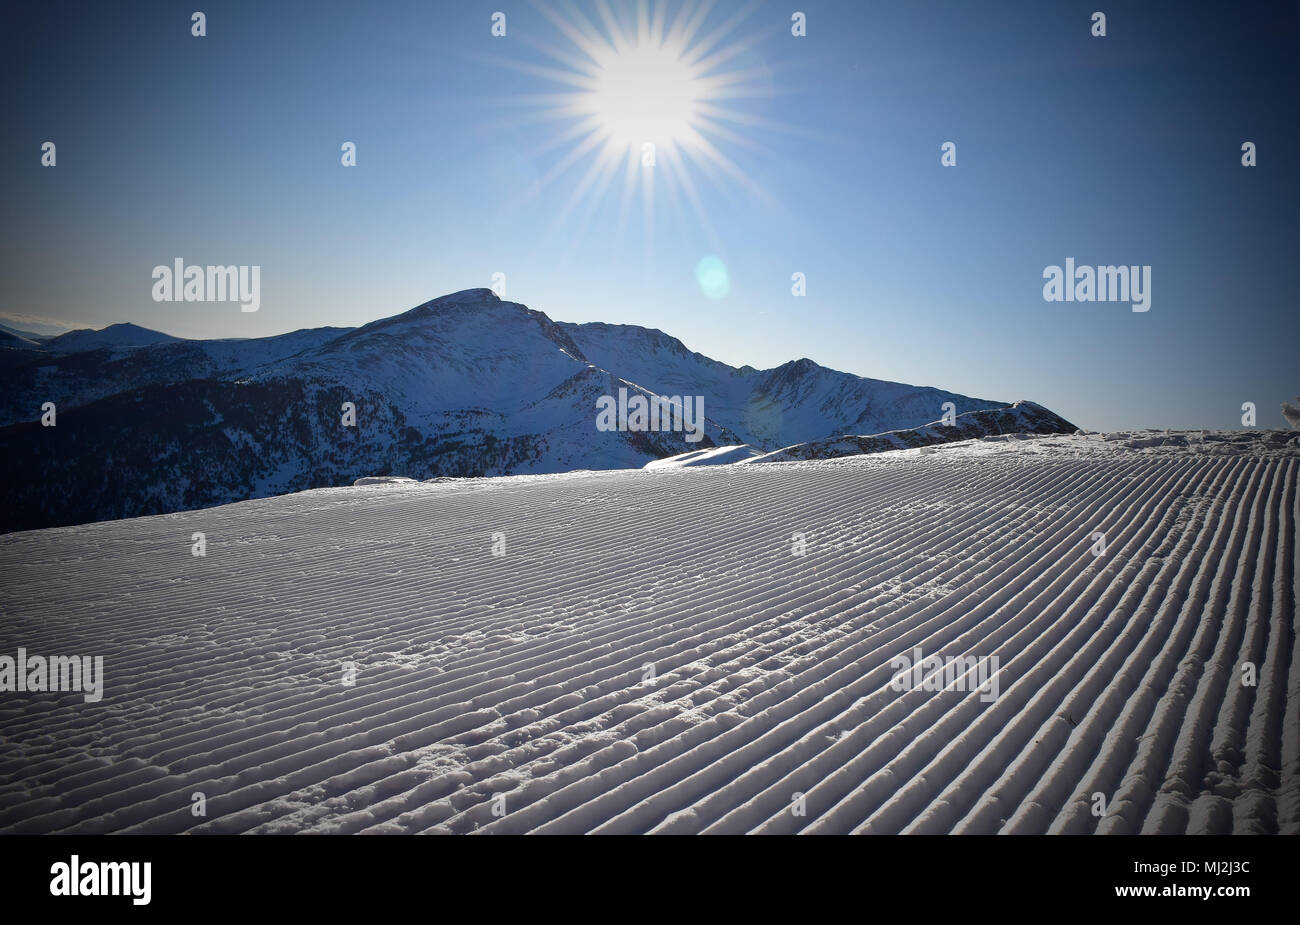 Sunny piste in ski resort - Stock Image